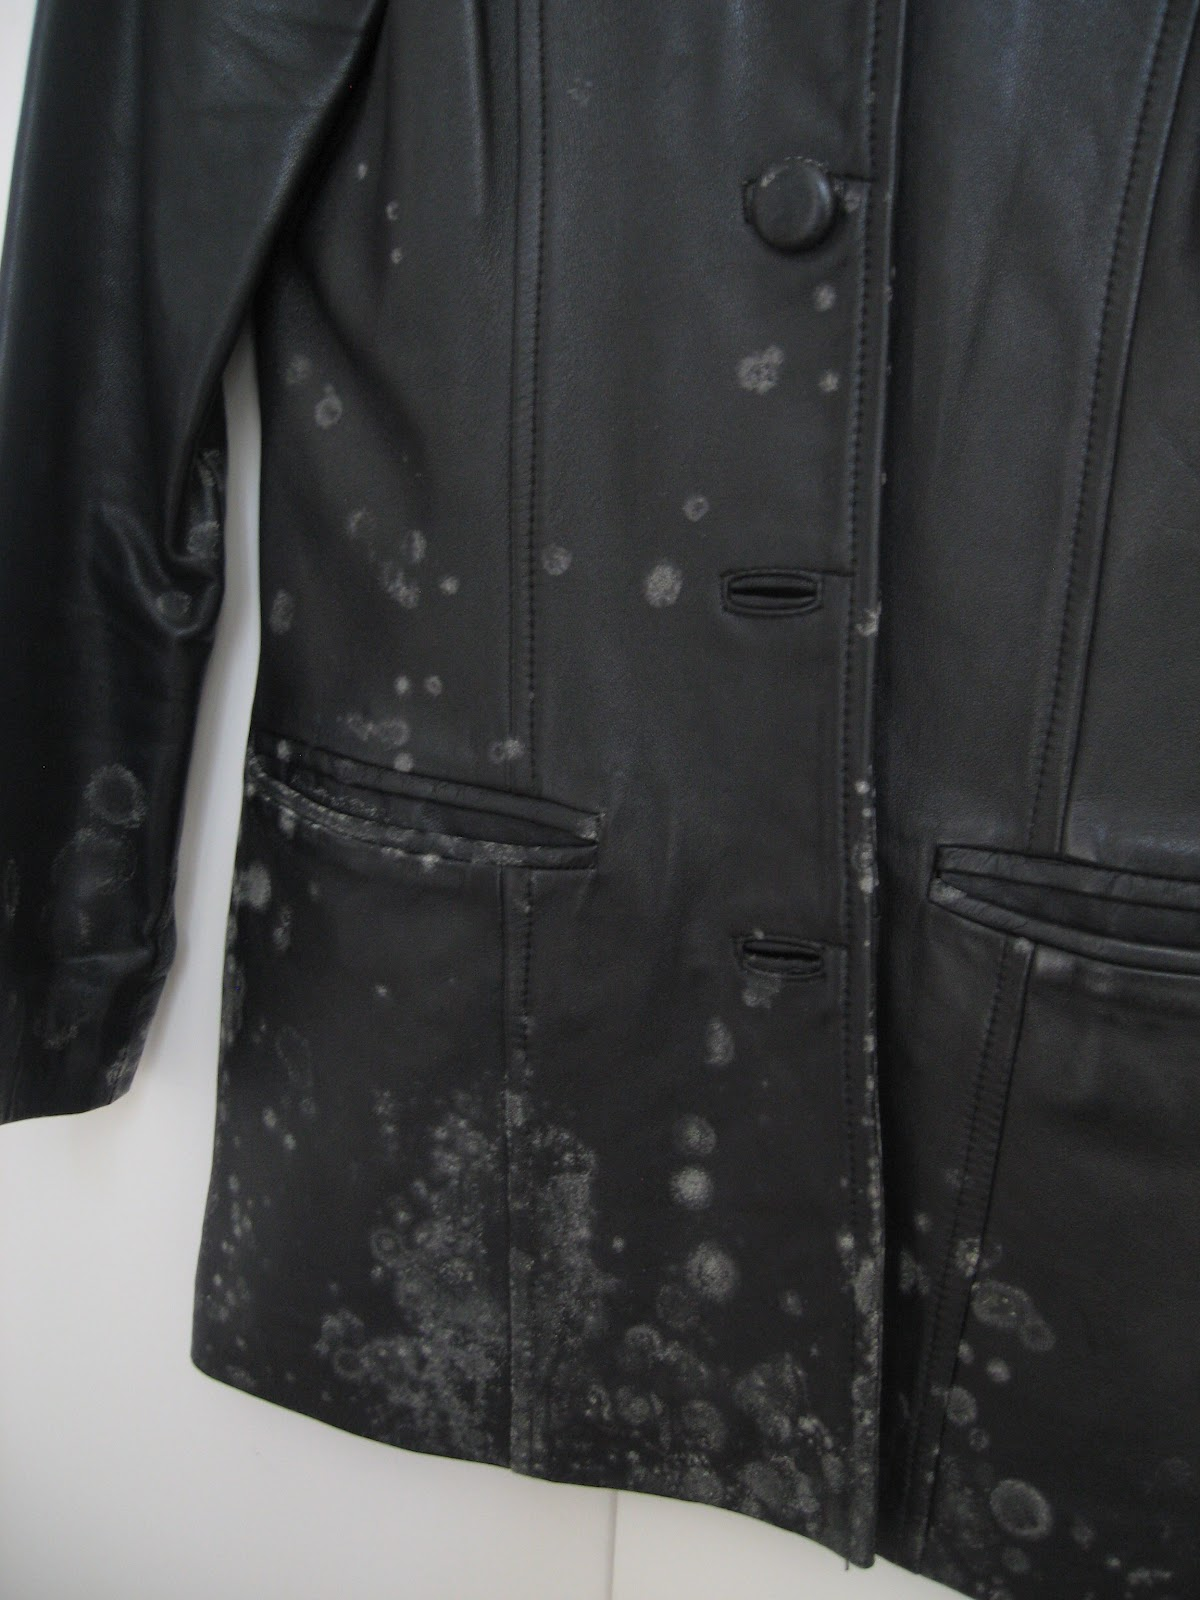 how to get rid of mould from clothes